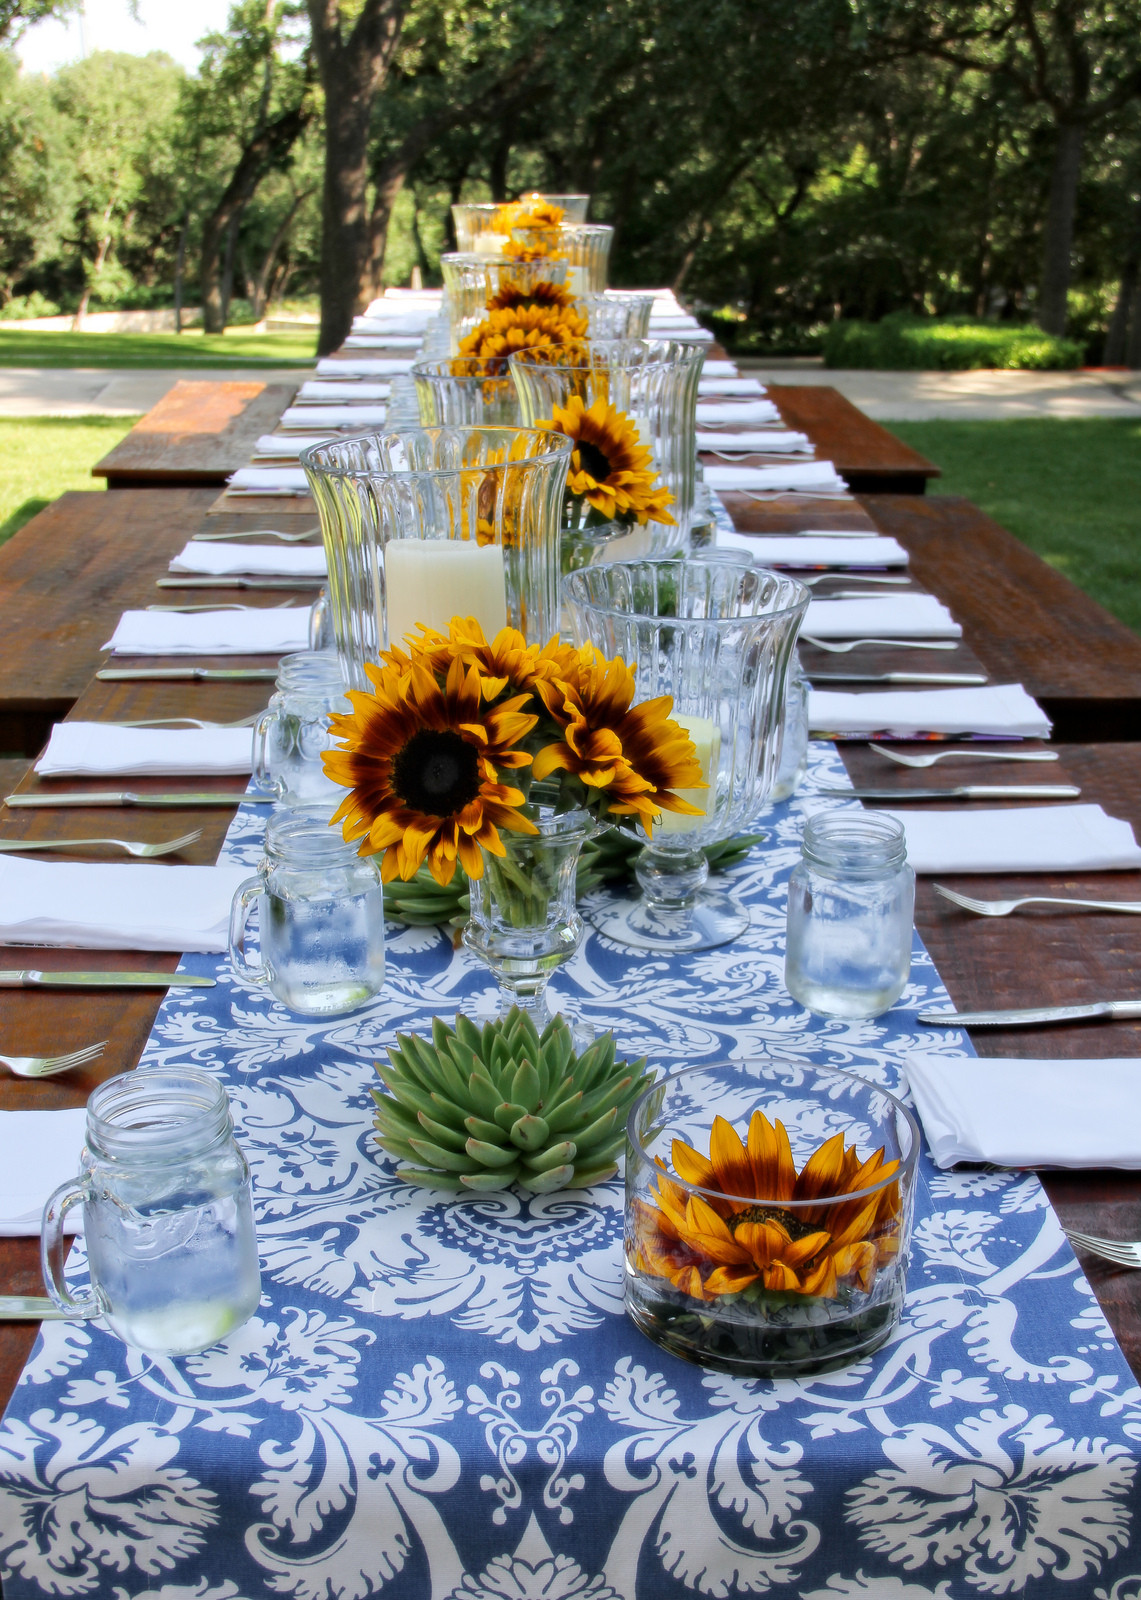 Backyard Table Ideas  50 Outdoor Party Ideas You Should Try Out This Summer